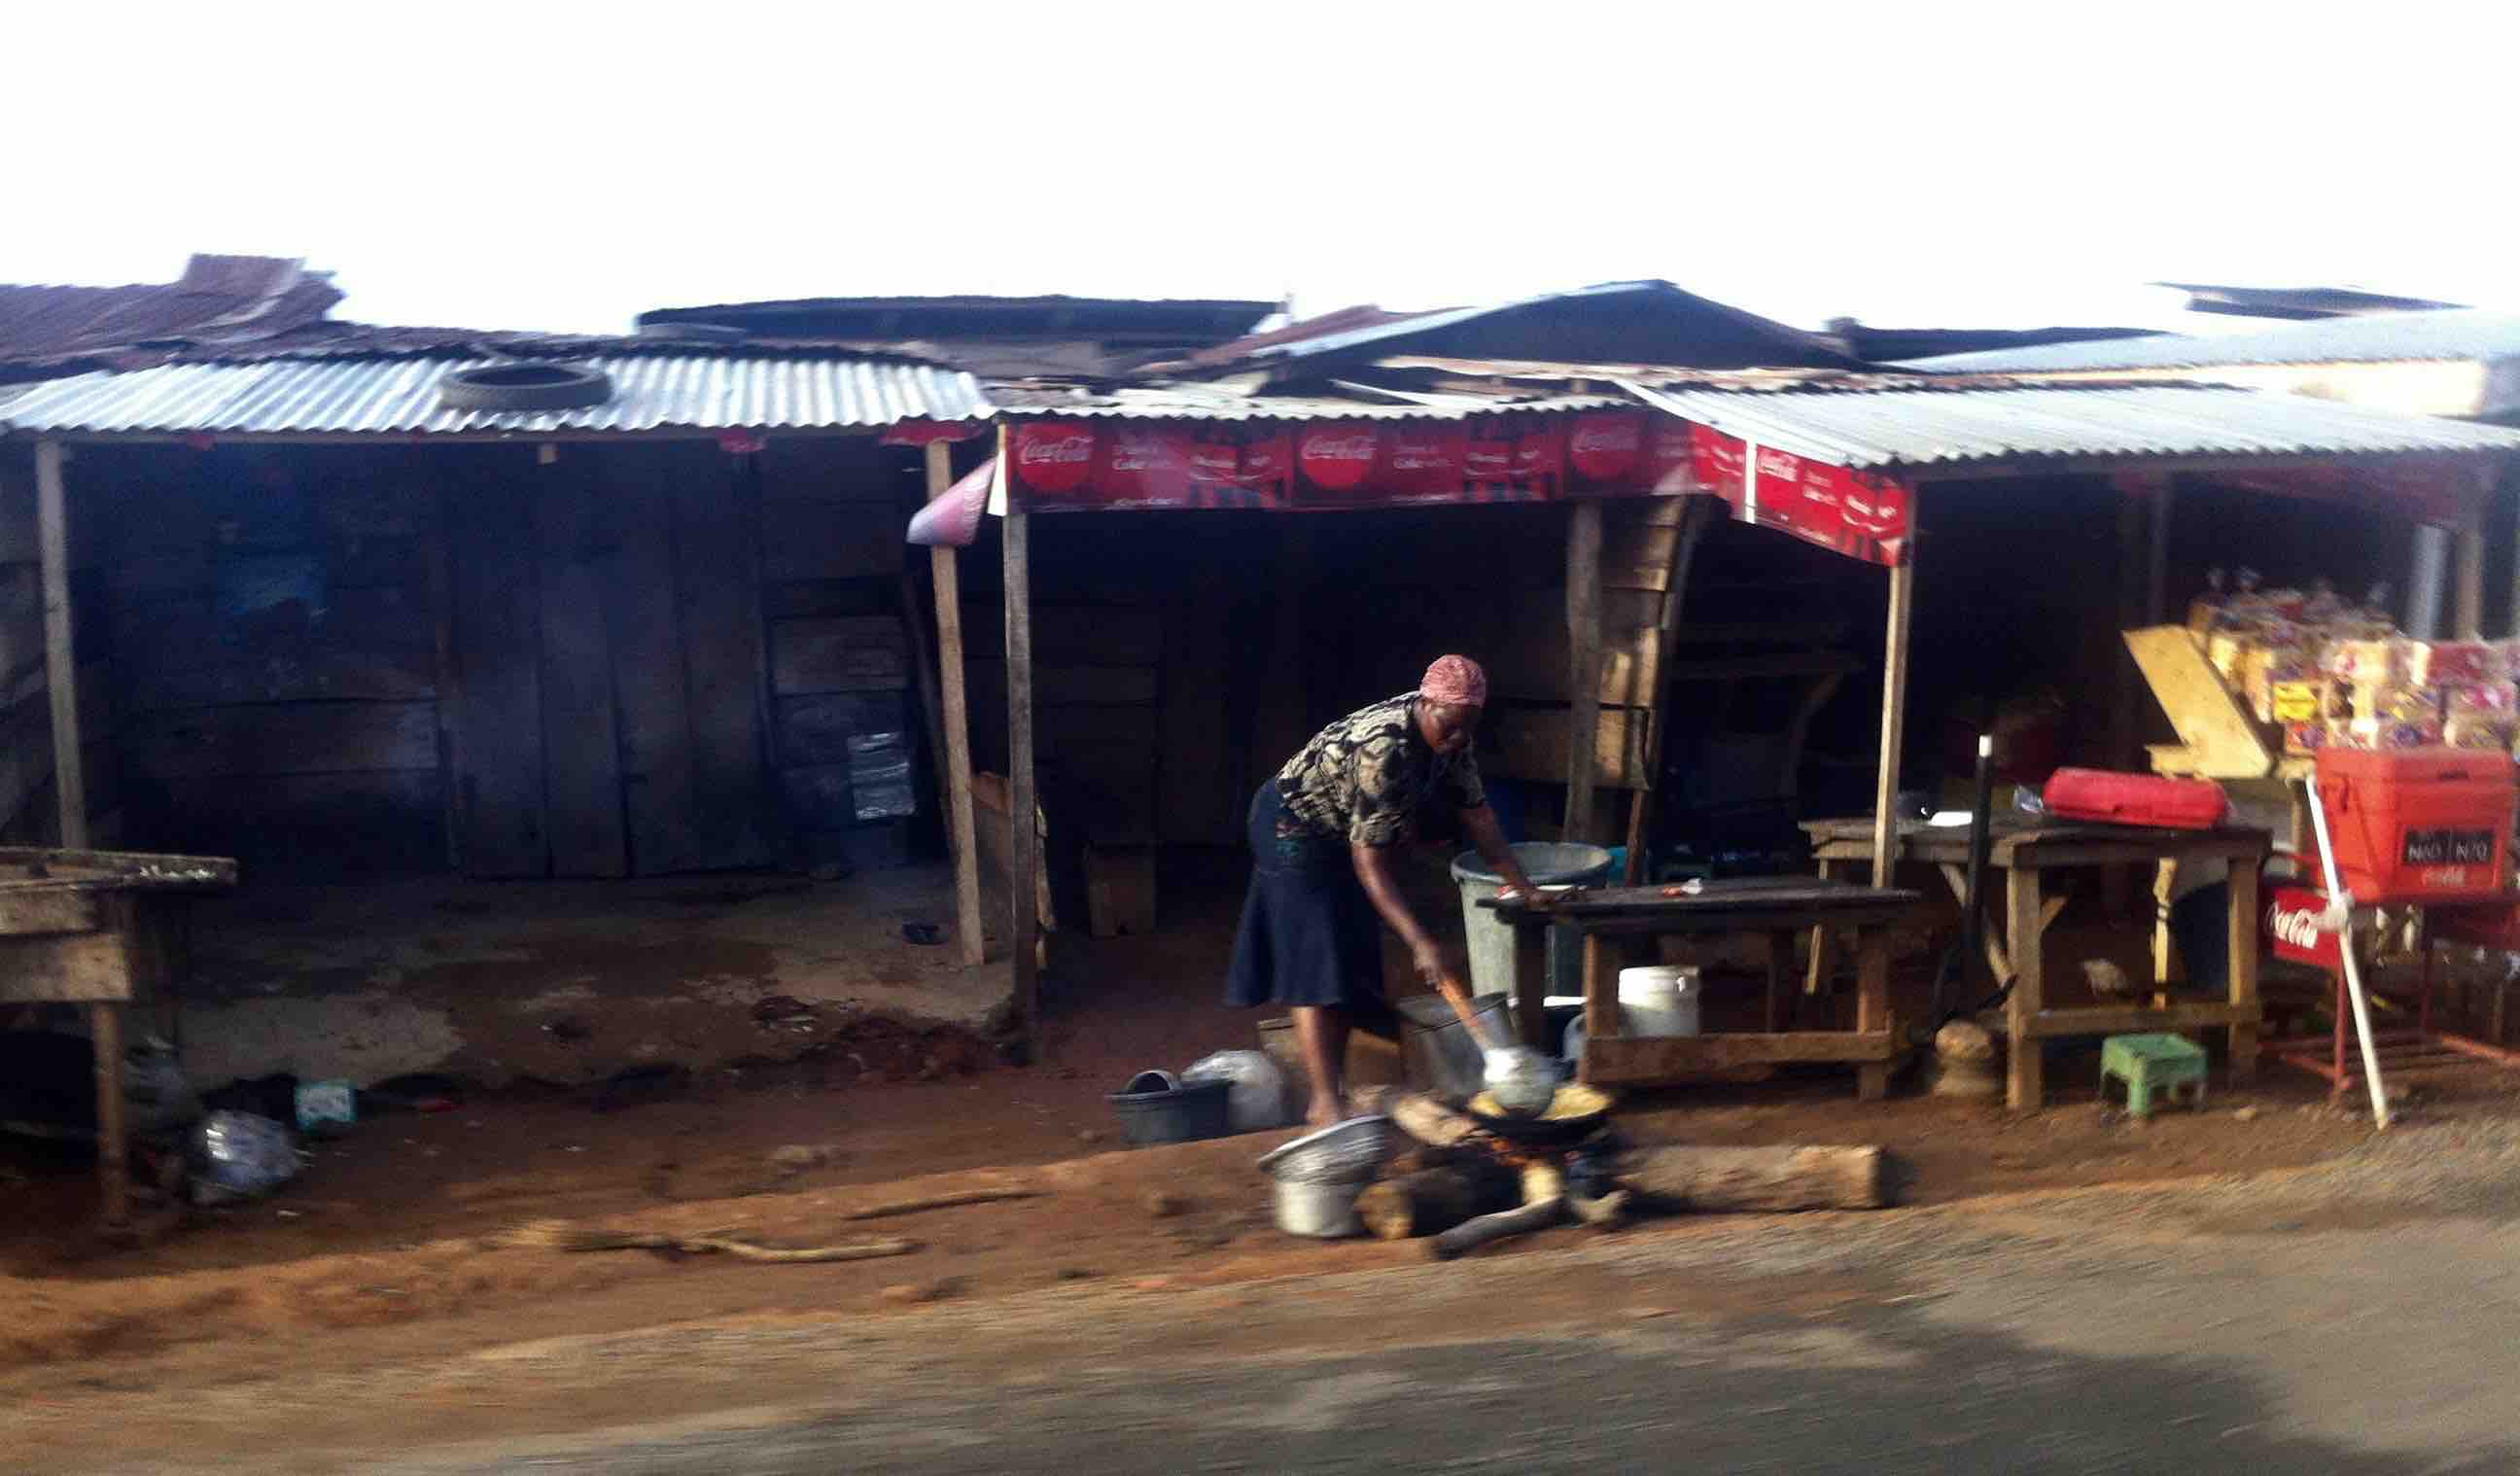 Woman frying yams by the roadside, Akure, Ondo State, Nigeria. #JujuFilms